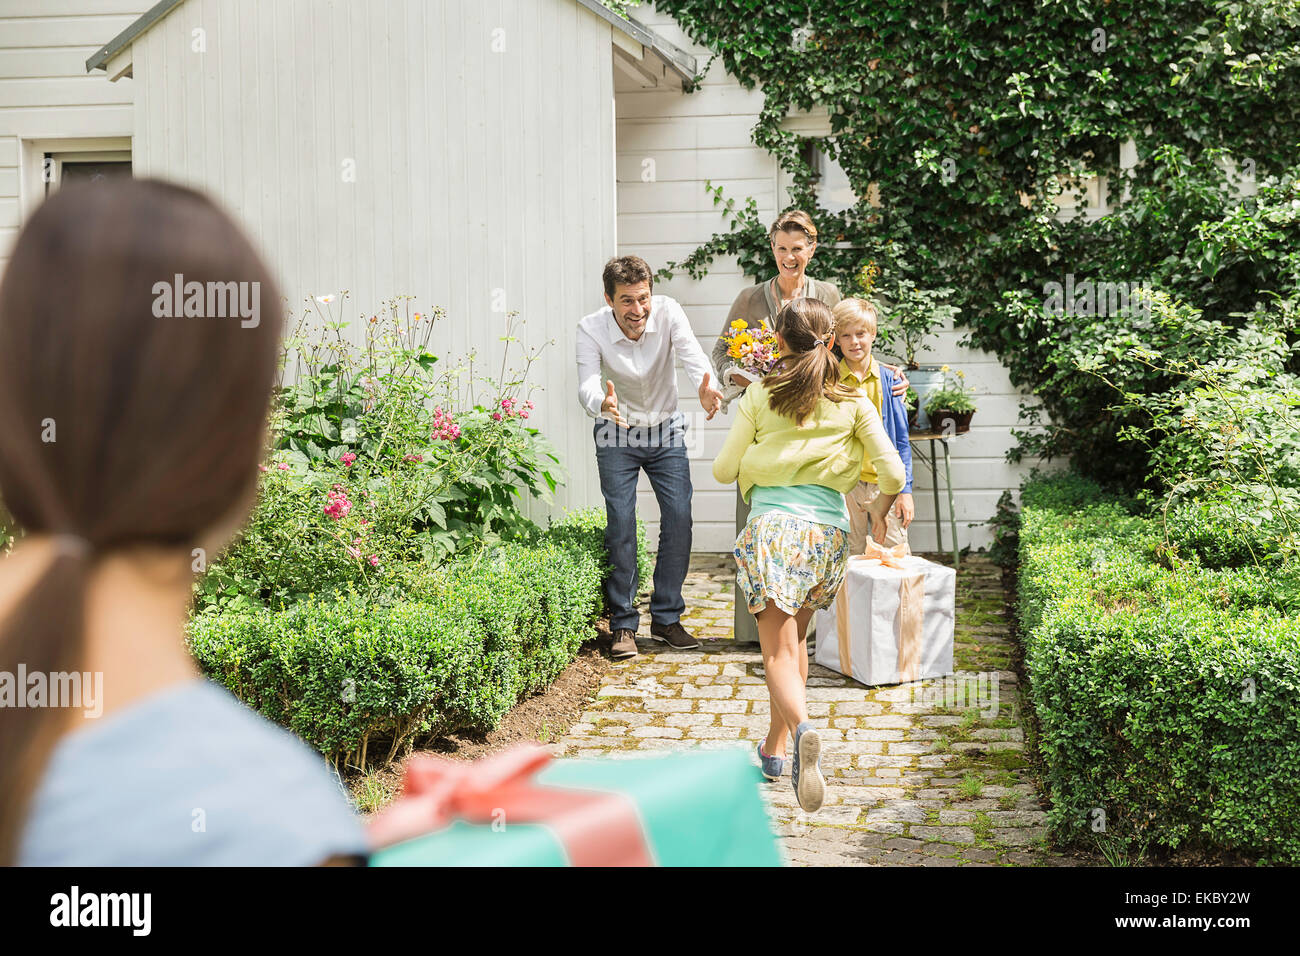 Mature couple with open arms greeting family in garden - Stock Image